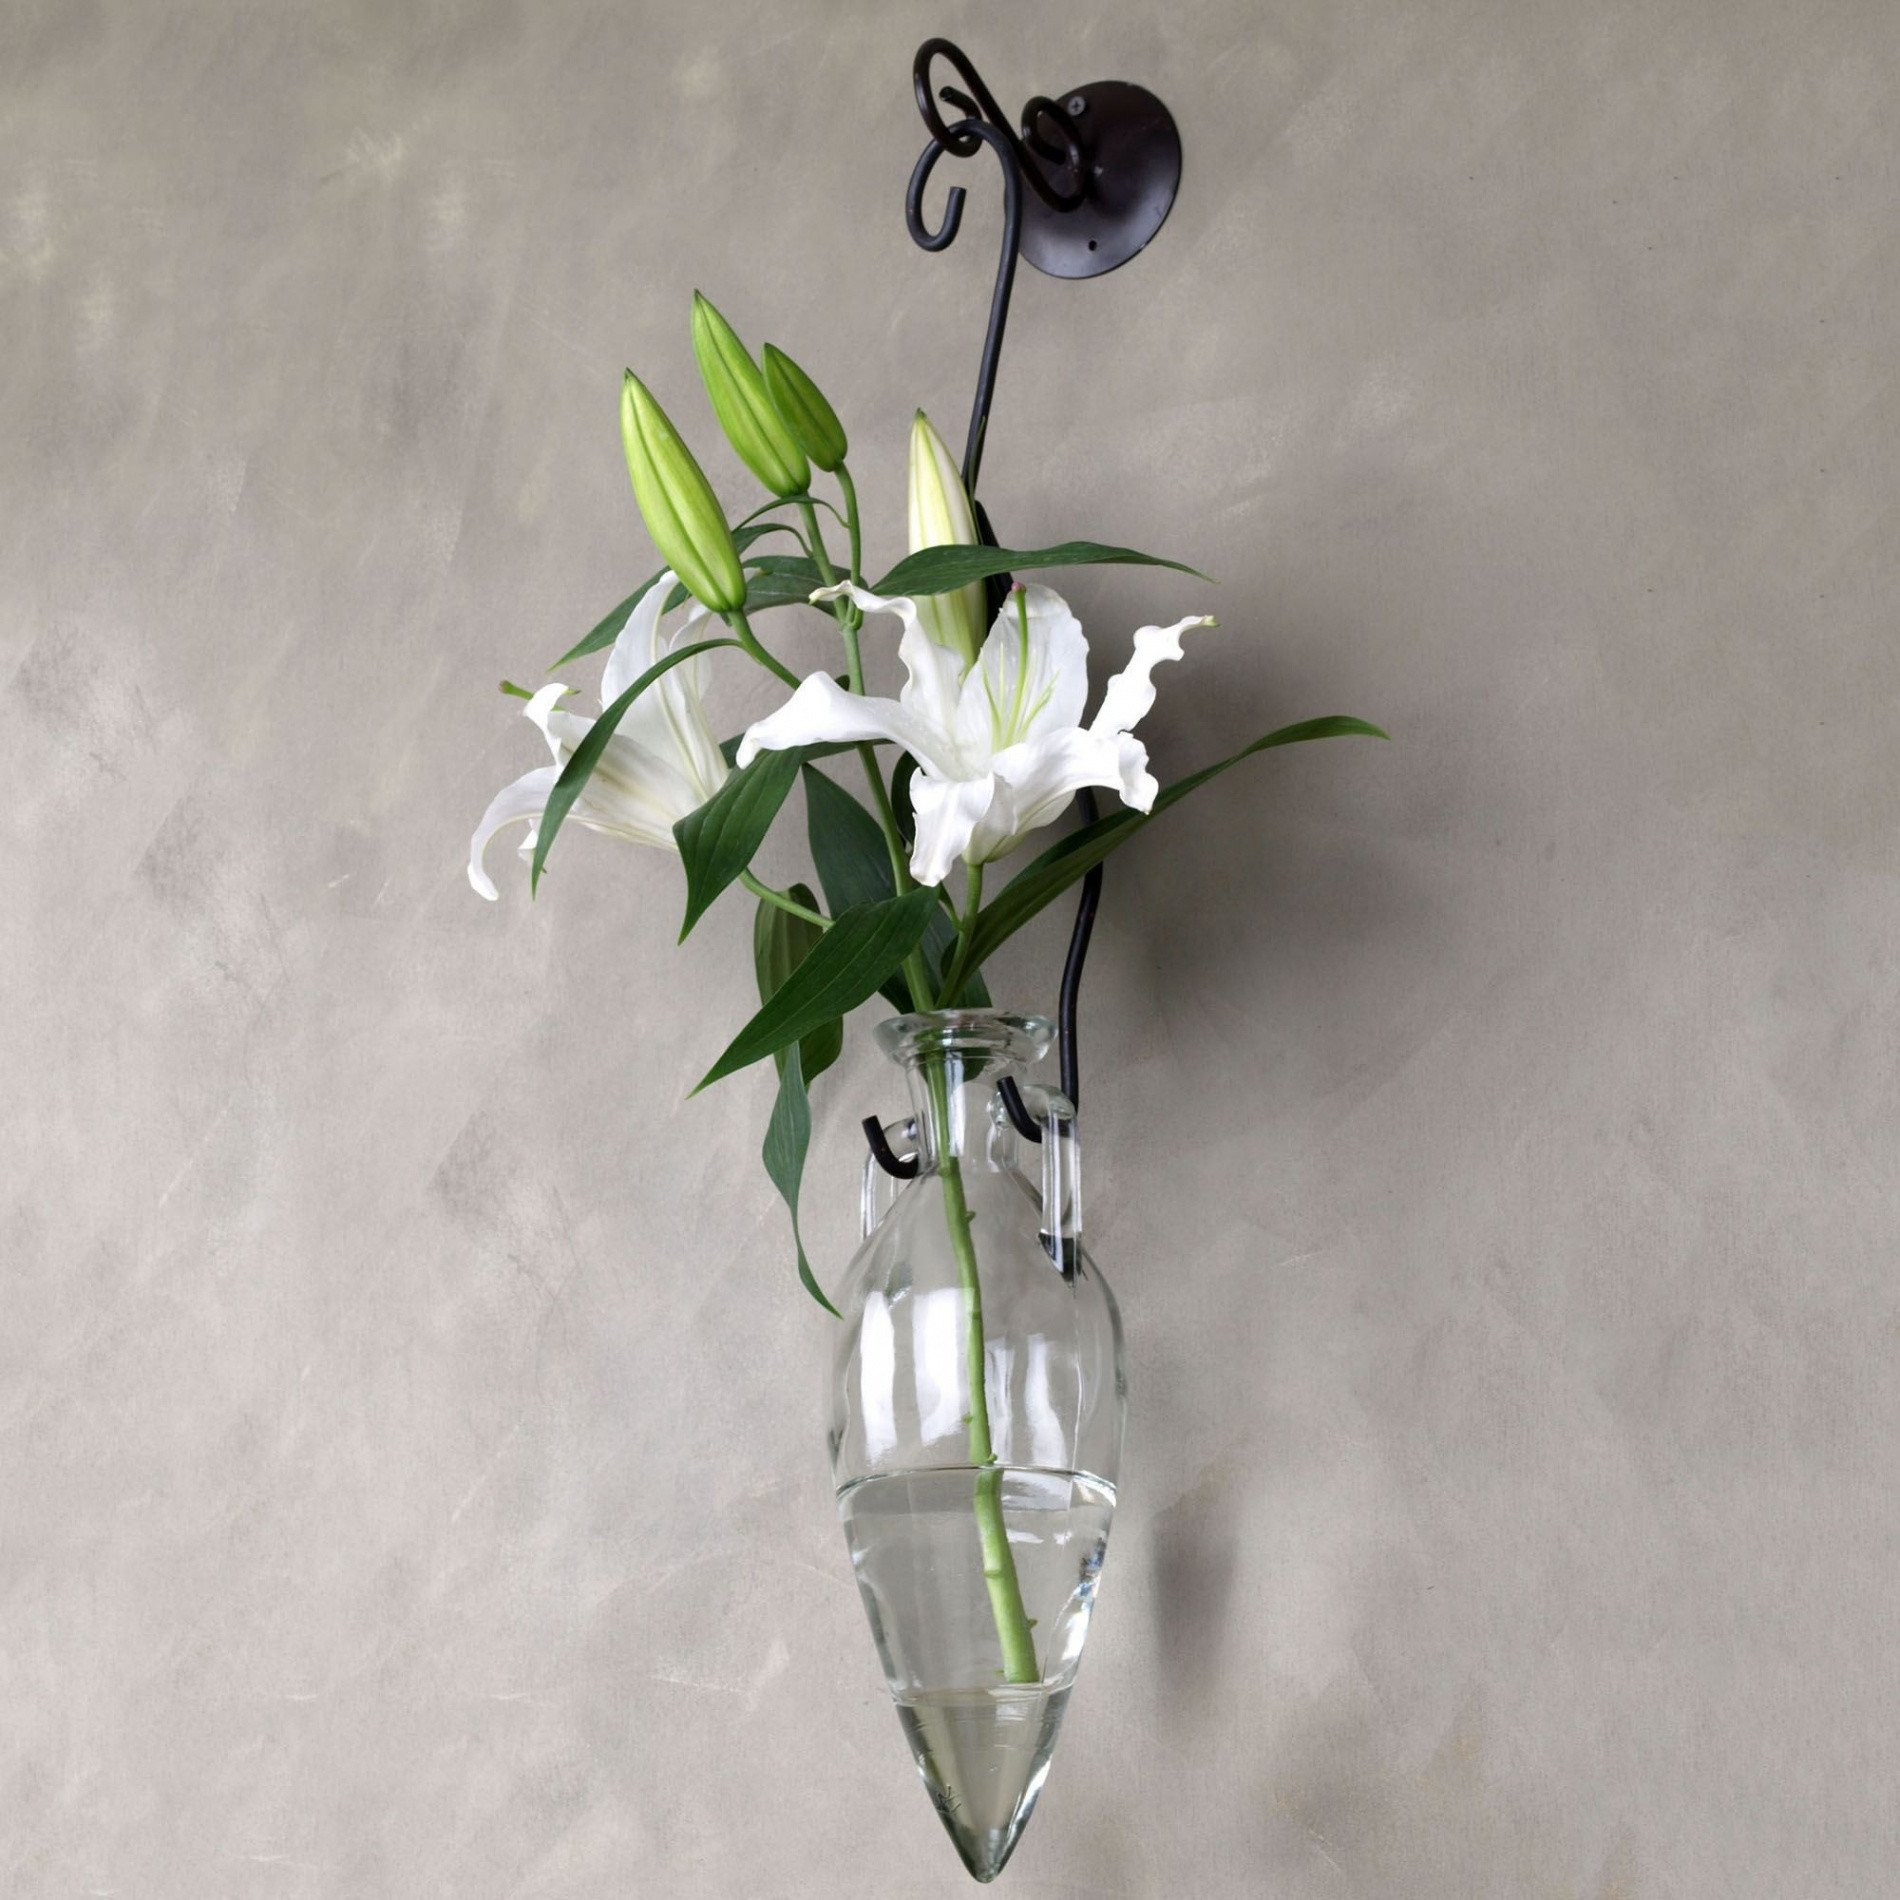 floor vase with fake flowers of h vases wall hanging flower vase newspaper i 0d scheme wall scheme regarding h vases wall hanging flower vase newspaper i 0d scheme wall scheme vase blanc deco